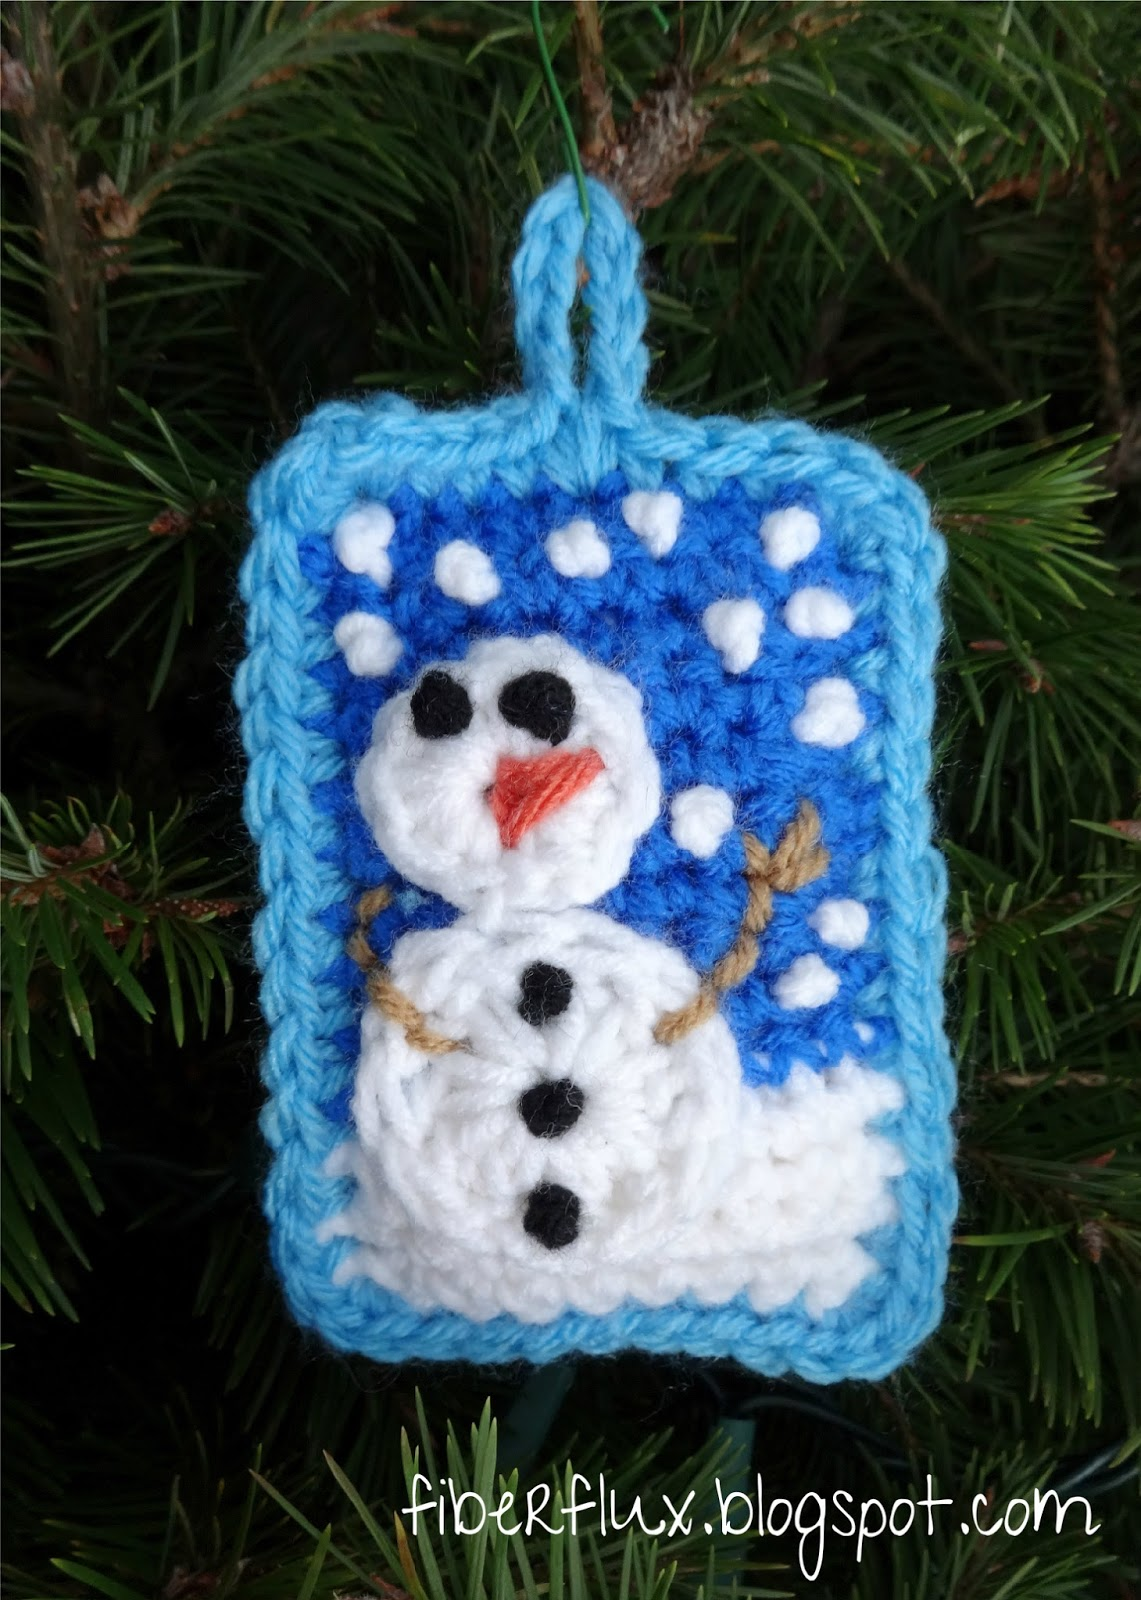 Fiber Flux: Free Crochet Pattern...Snow Day Pillow Ornament!